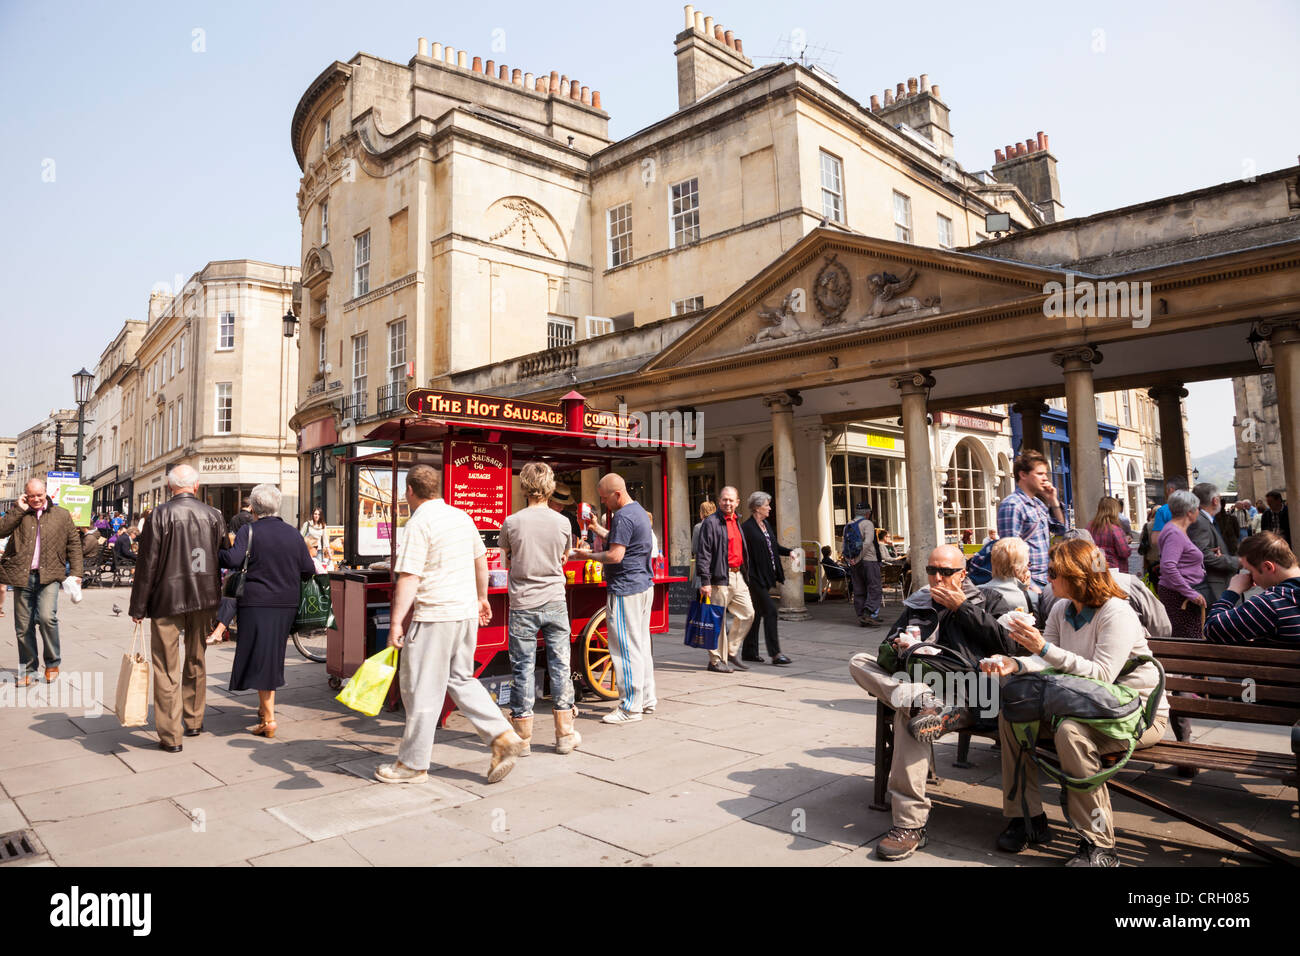 One of the Hot Sausage Company's stalls in the centre of Bath, Somerset, England, surrounded by people. - Stock Image